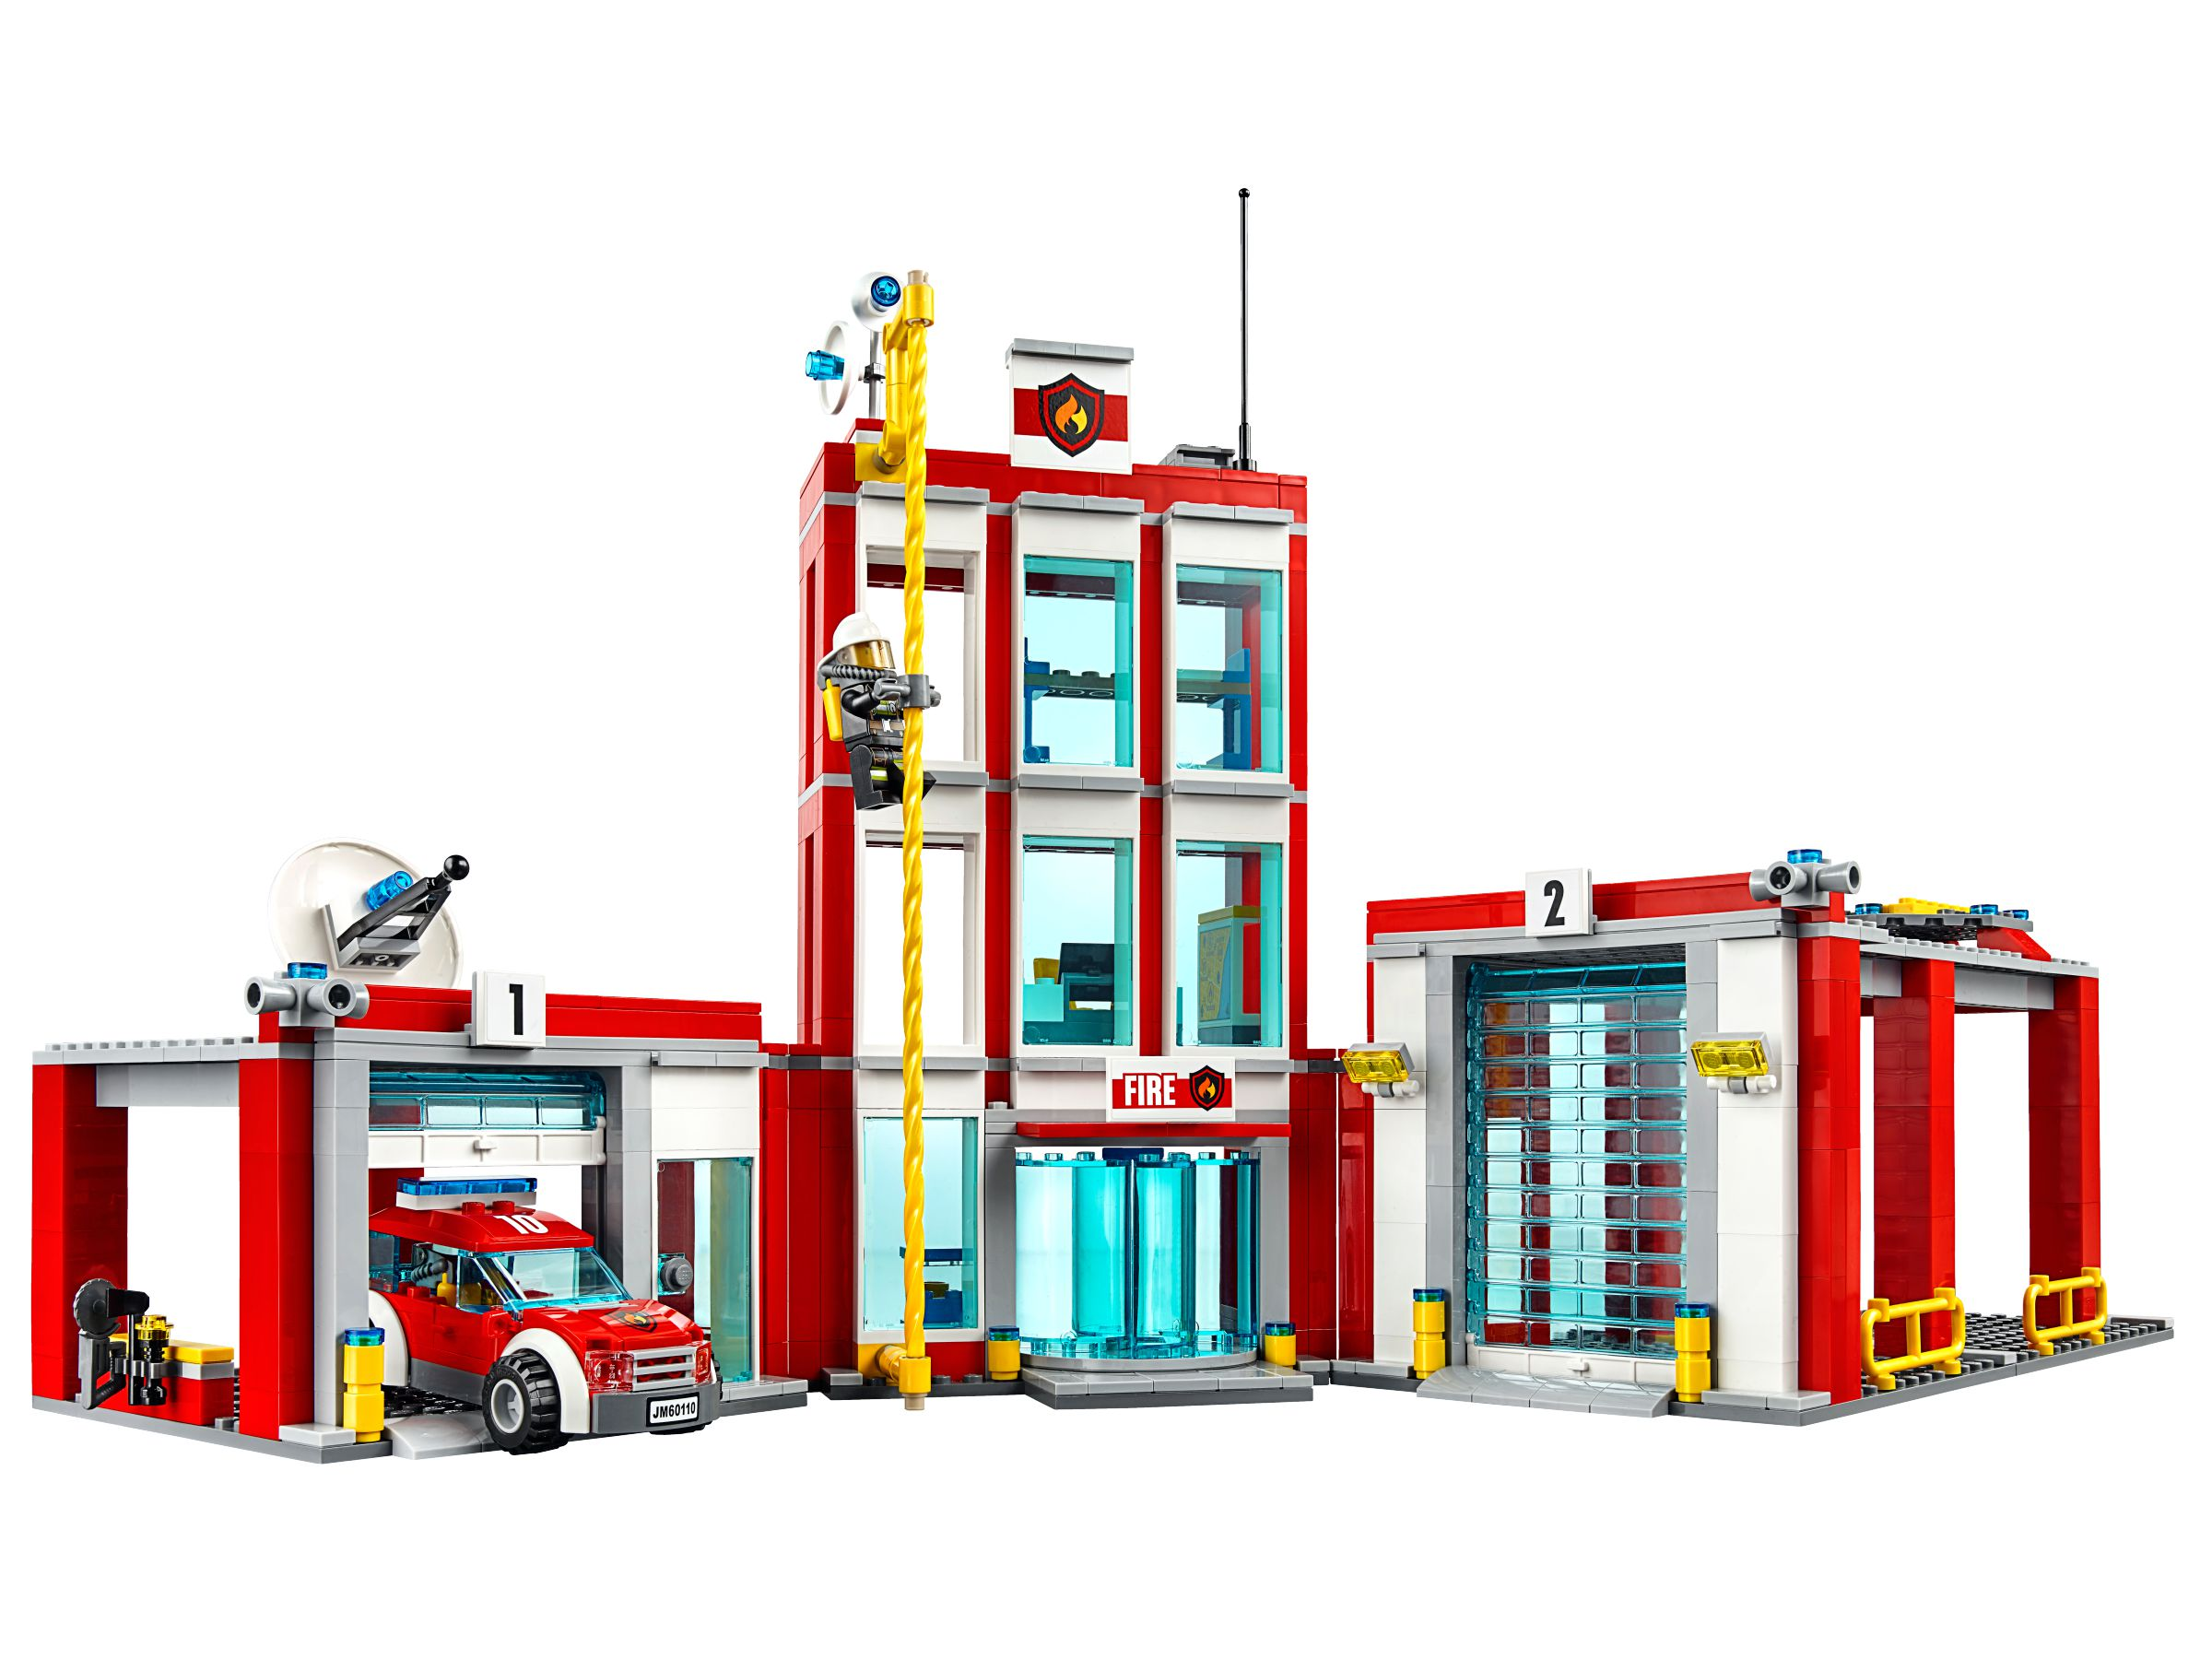 lego 60110 gro e feuerwehrstation city 2016 ab 53 72 46 gespart fire station brickmerge. Black Bedroom Furniture Sets. Home Design Ideas